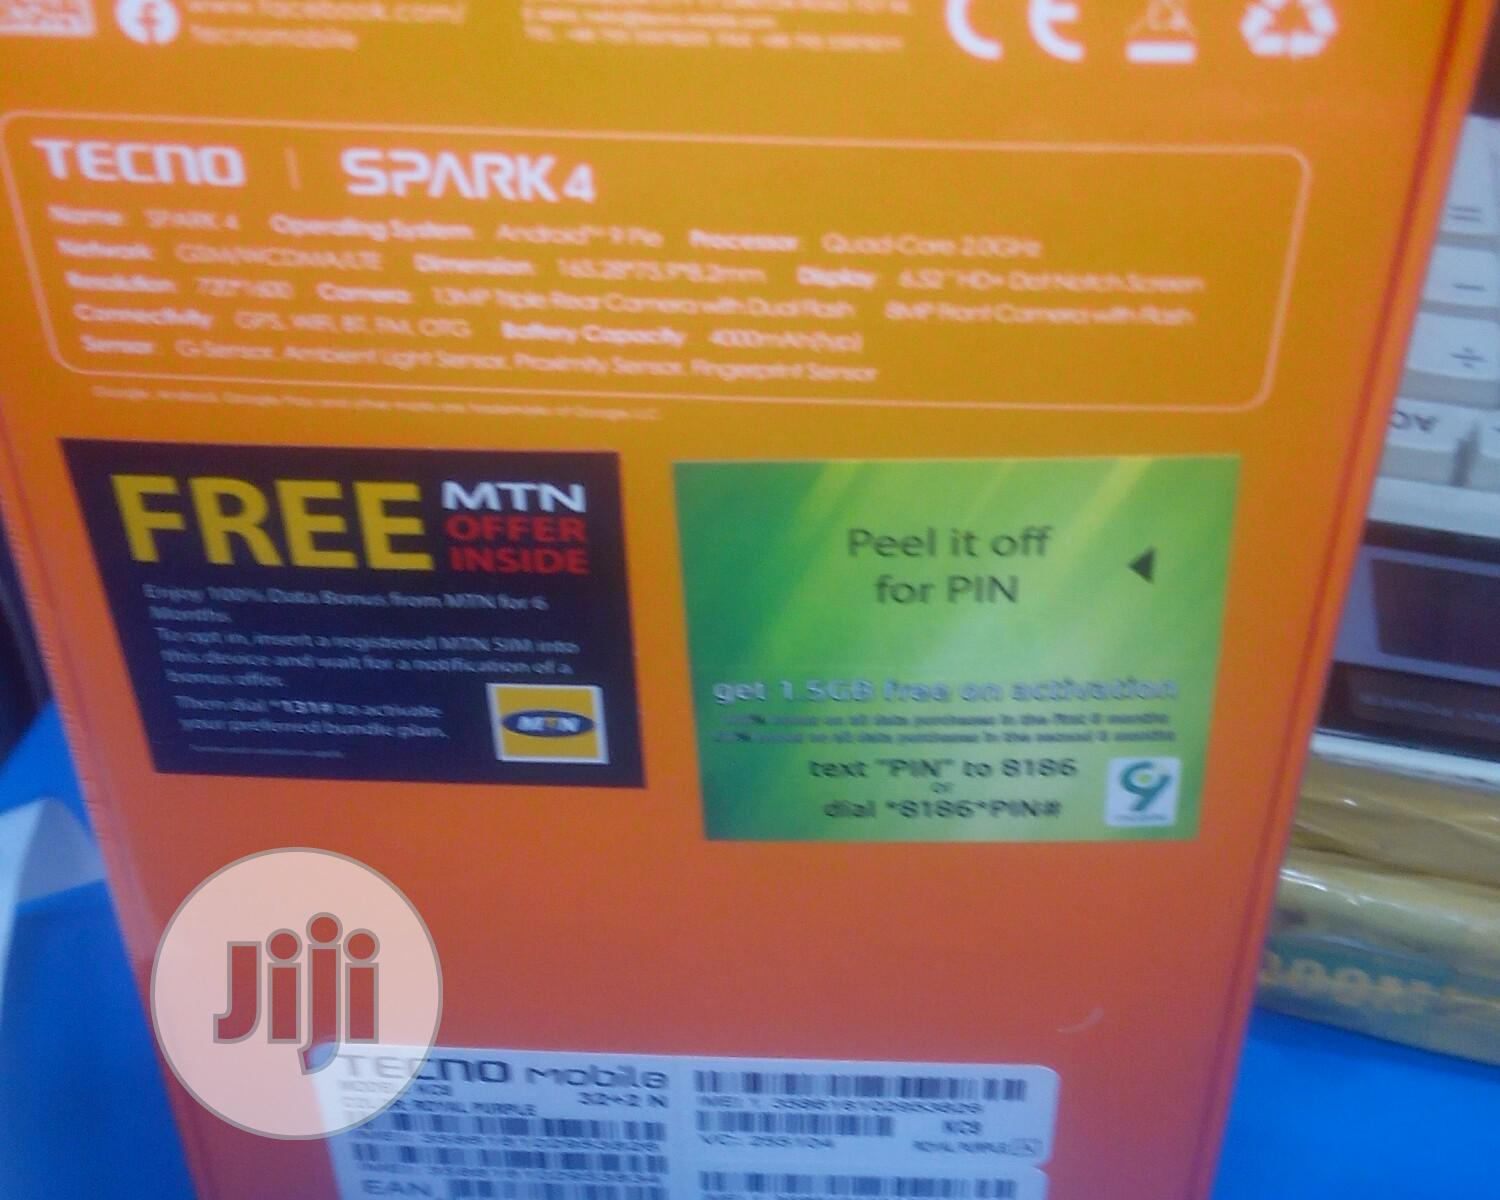 New Tecno Spark 4 32 GB | Mobile Phones for sale in Ikeja, Lagos State, Nigeria